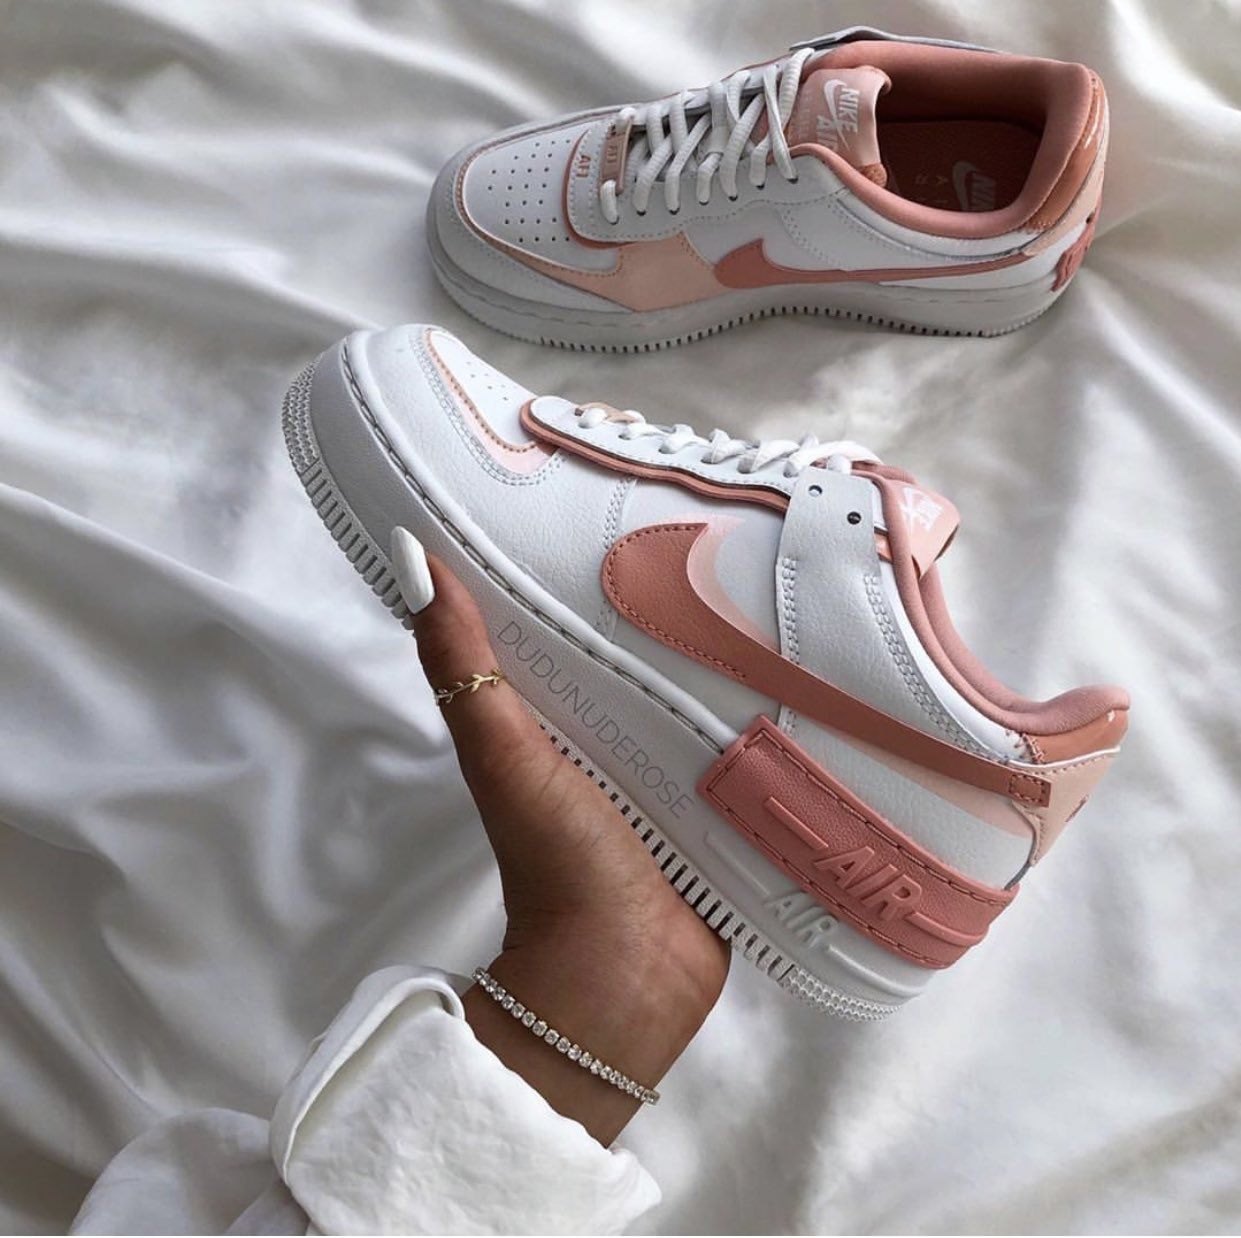 On Twitter Air Force 1 Shadow Pink Quartz In 2020 Nike Air Shoes Nike Fashion Shoes Air Force Shoes Nike air force 1 af1 shadow beige pale ivory multi uk 4.5 eu 38 us 7 cu3012 164. air force 1 shadow pink quartz